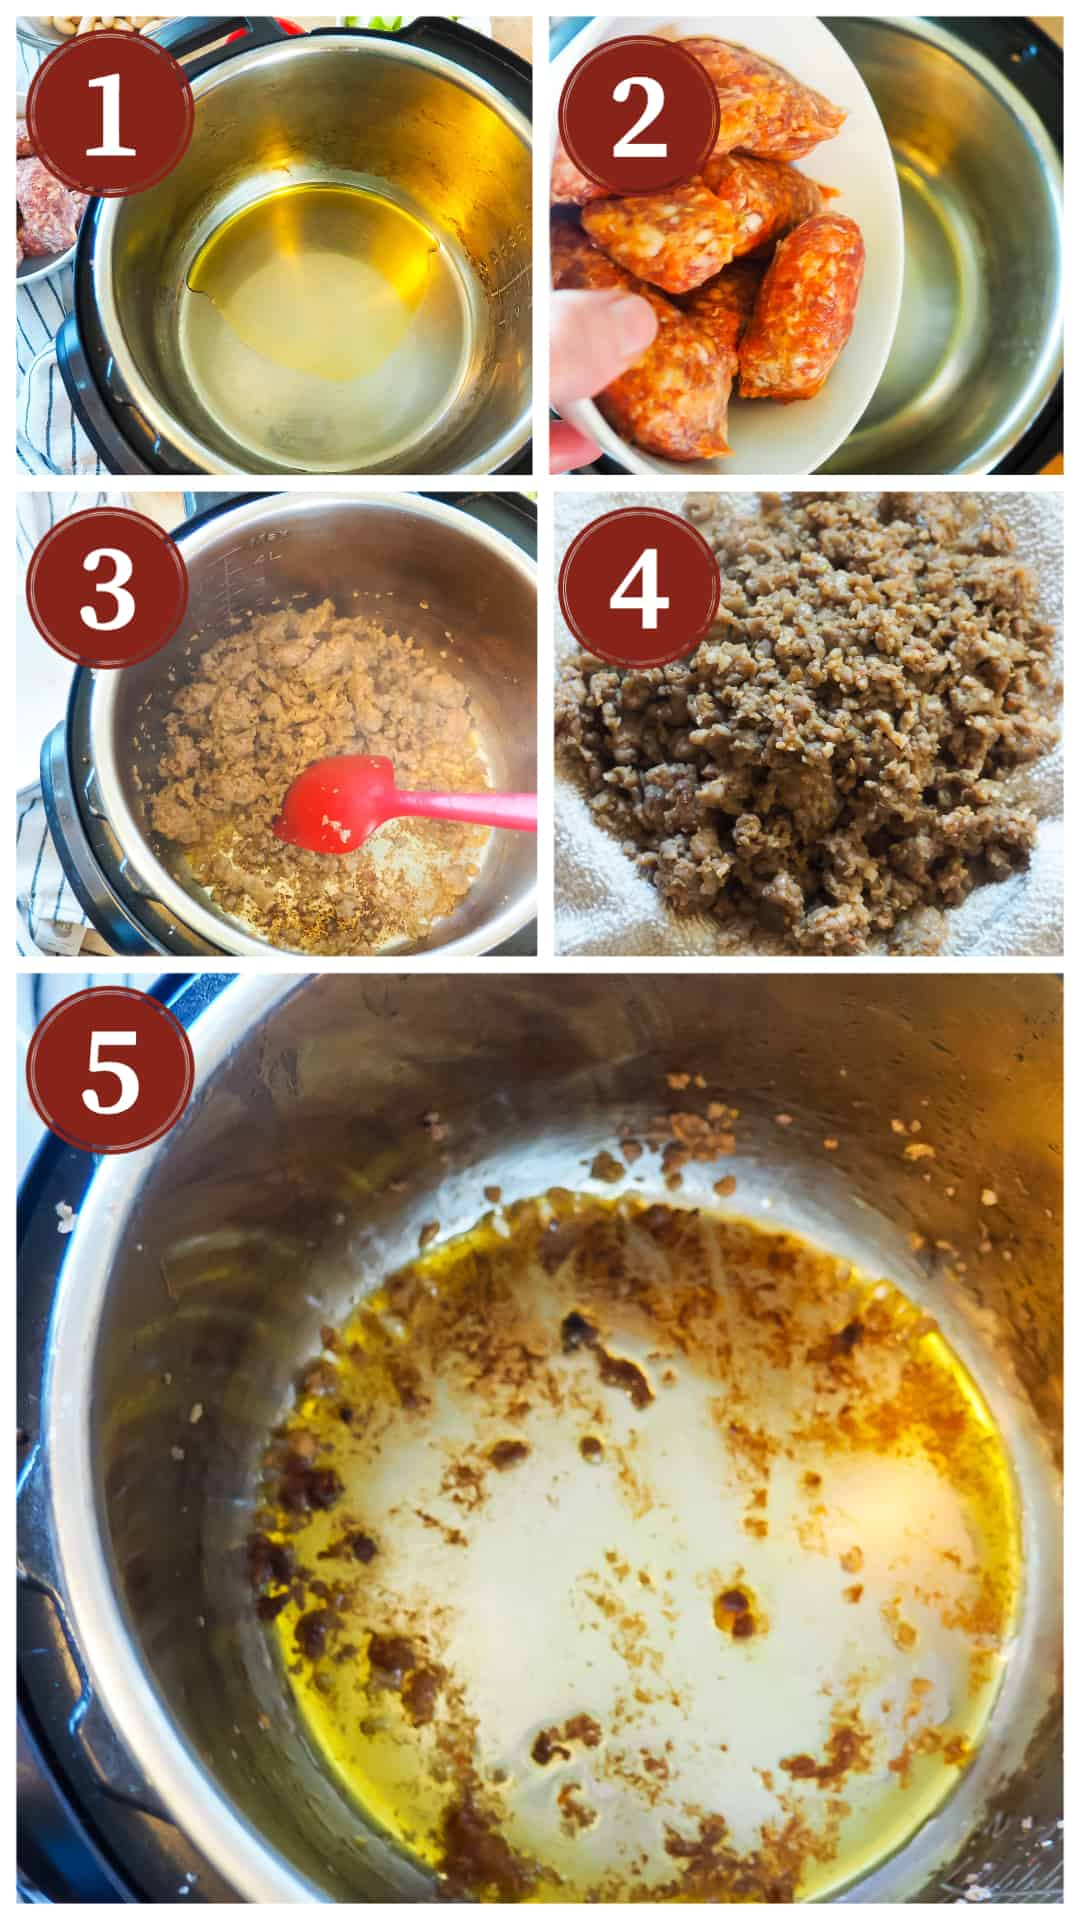 A process collage of images for making pasta e fagioli in an instant pot, steps 1 - 5.